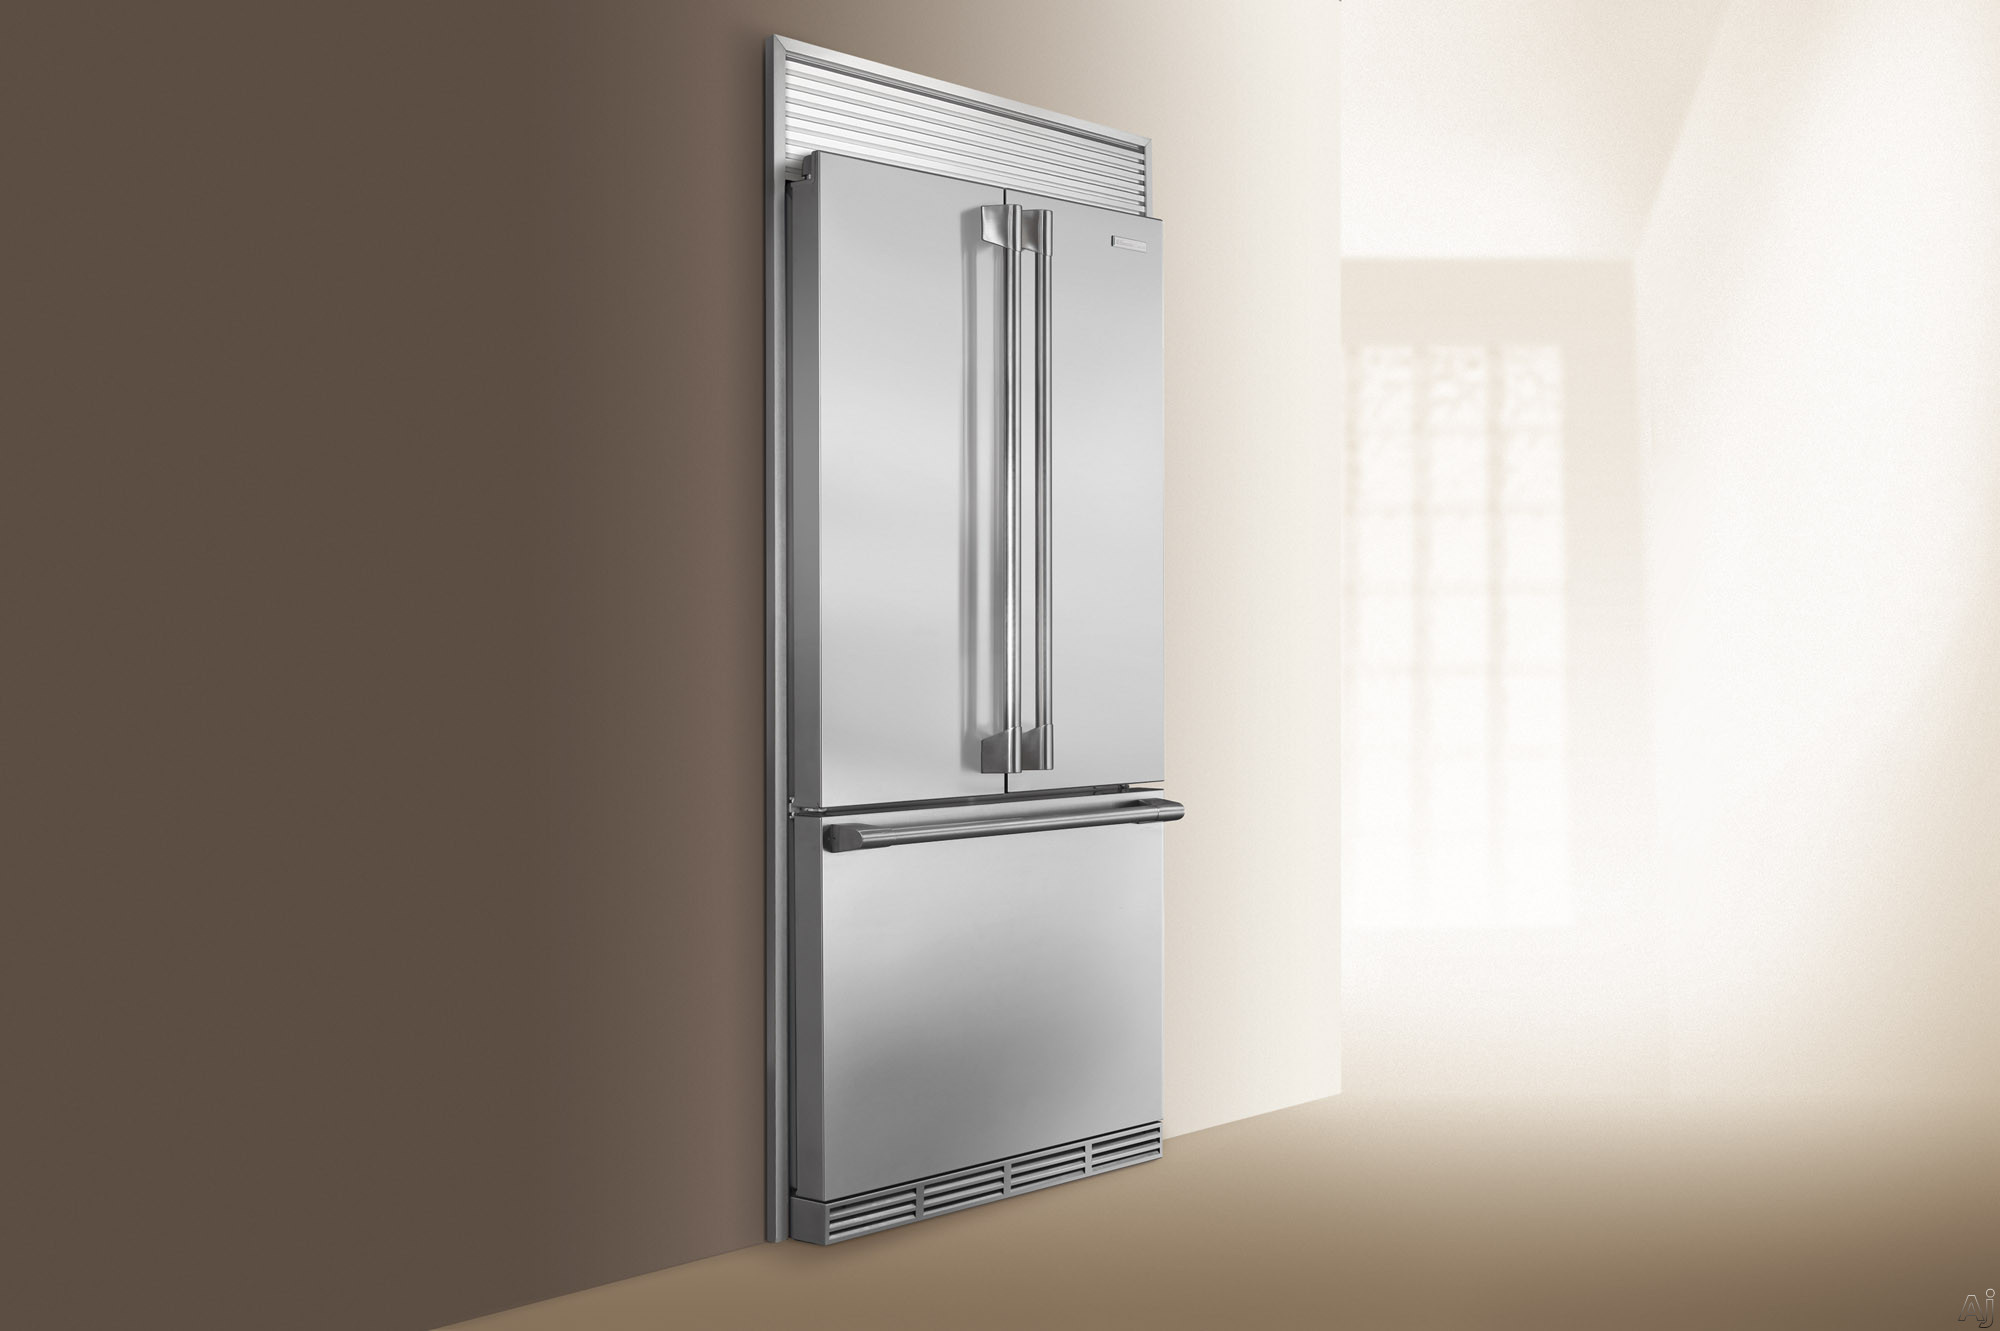 Electrolux E23bc68jps 22 6 Cu Ft French Door